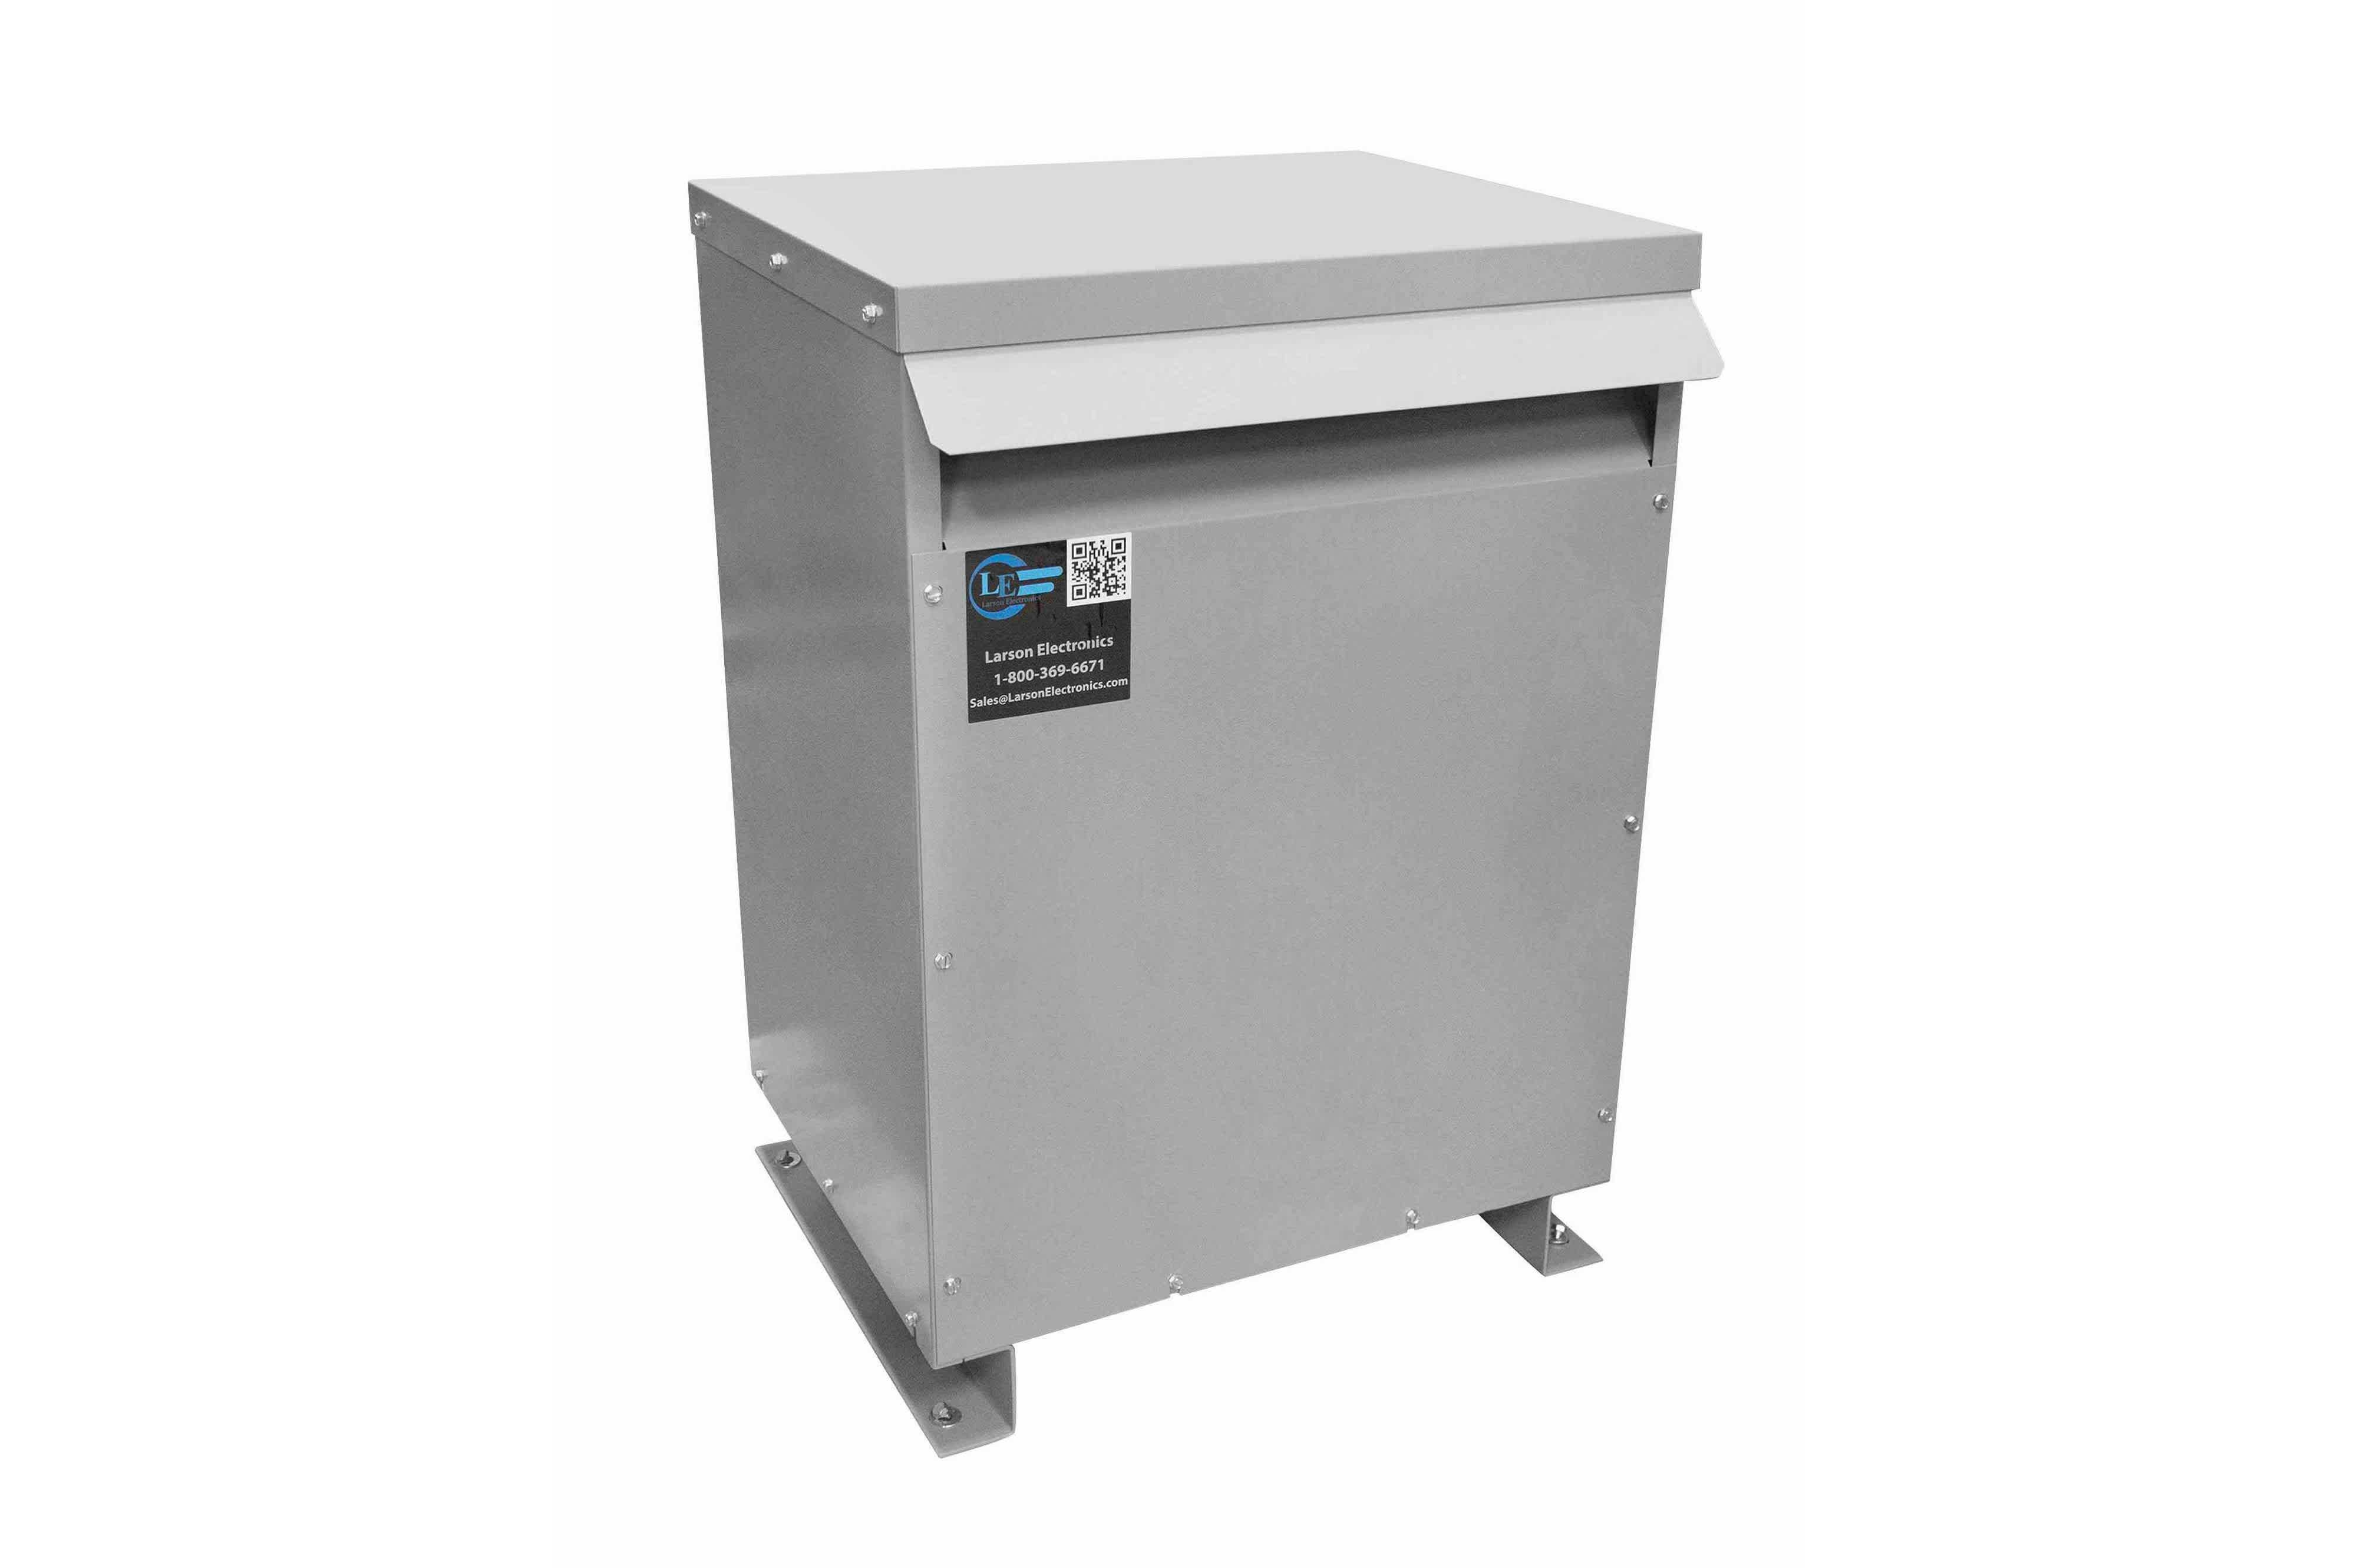 250 kVA 3PH Isolation Transformer, 480V Wye Primary, 400V Delta Secondary, N3R, Ventilated, 60 Hz